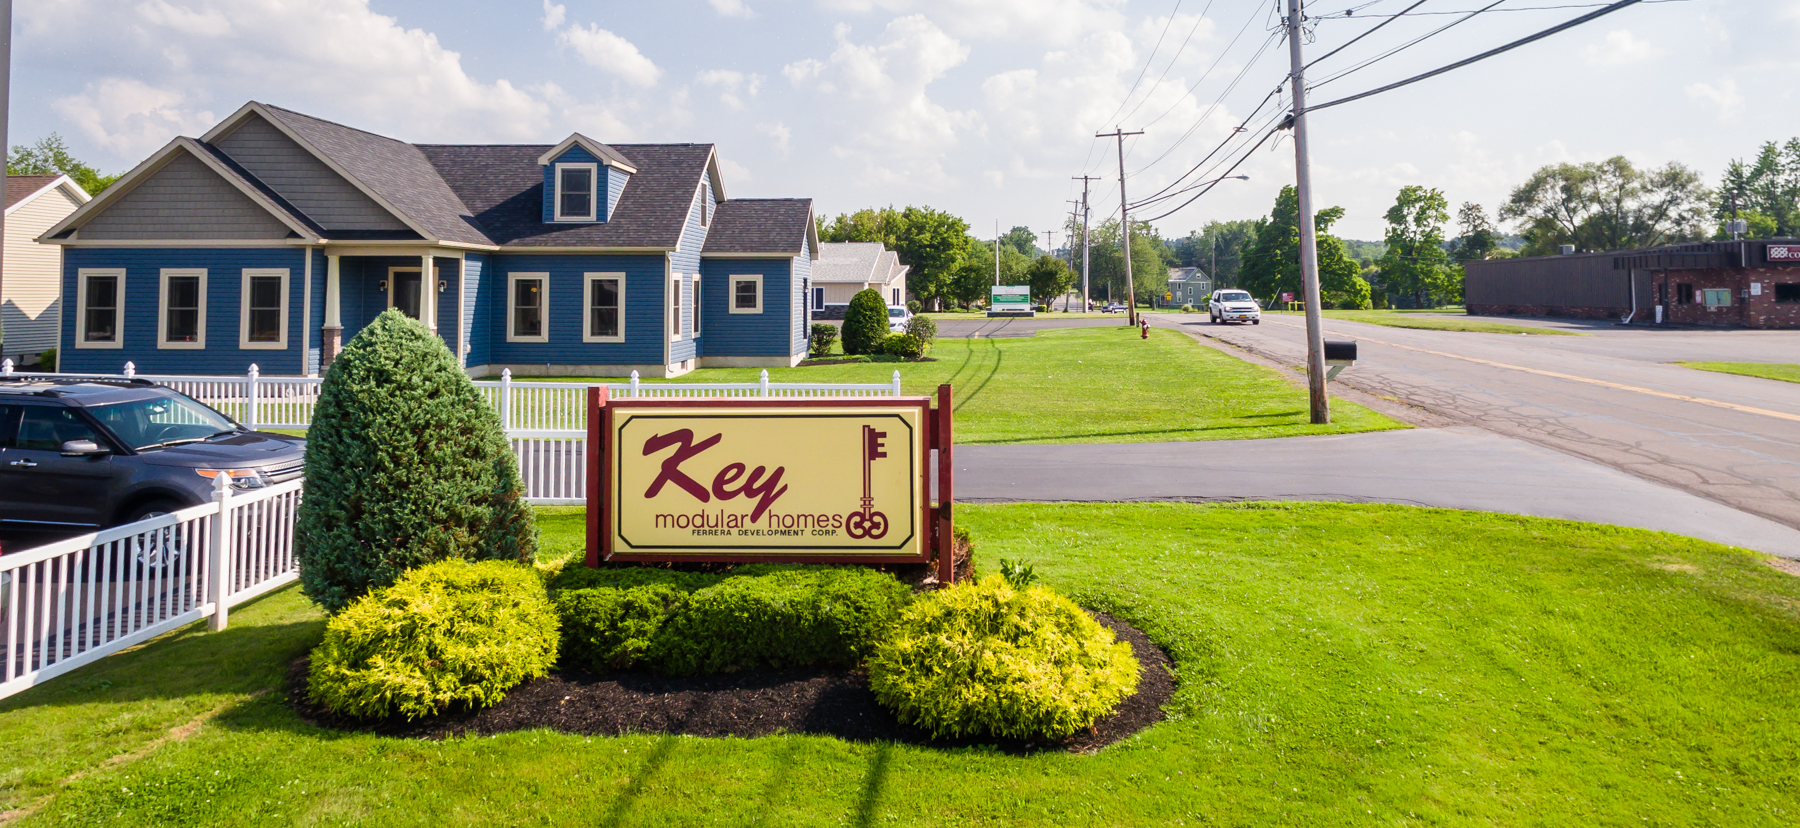 key homes sign